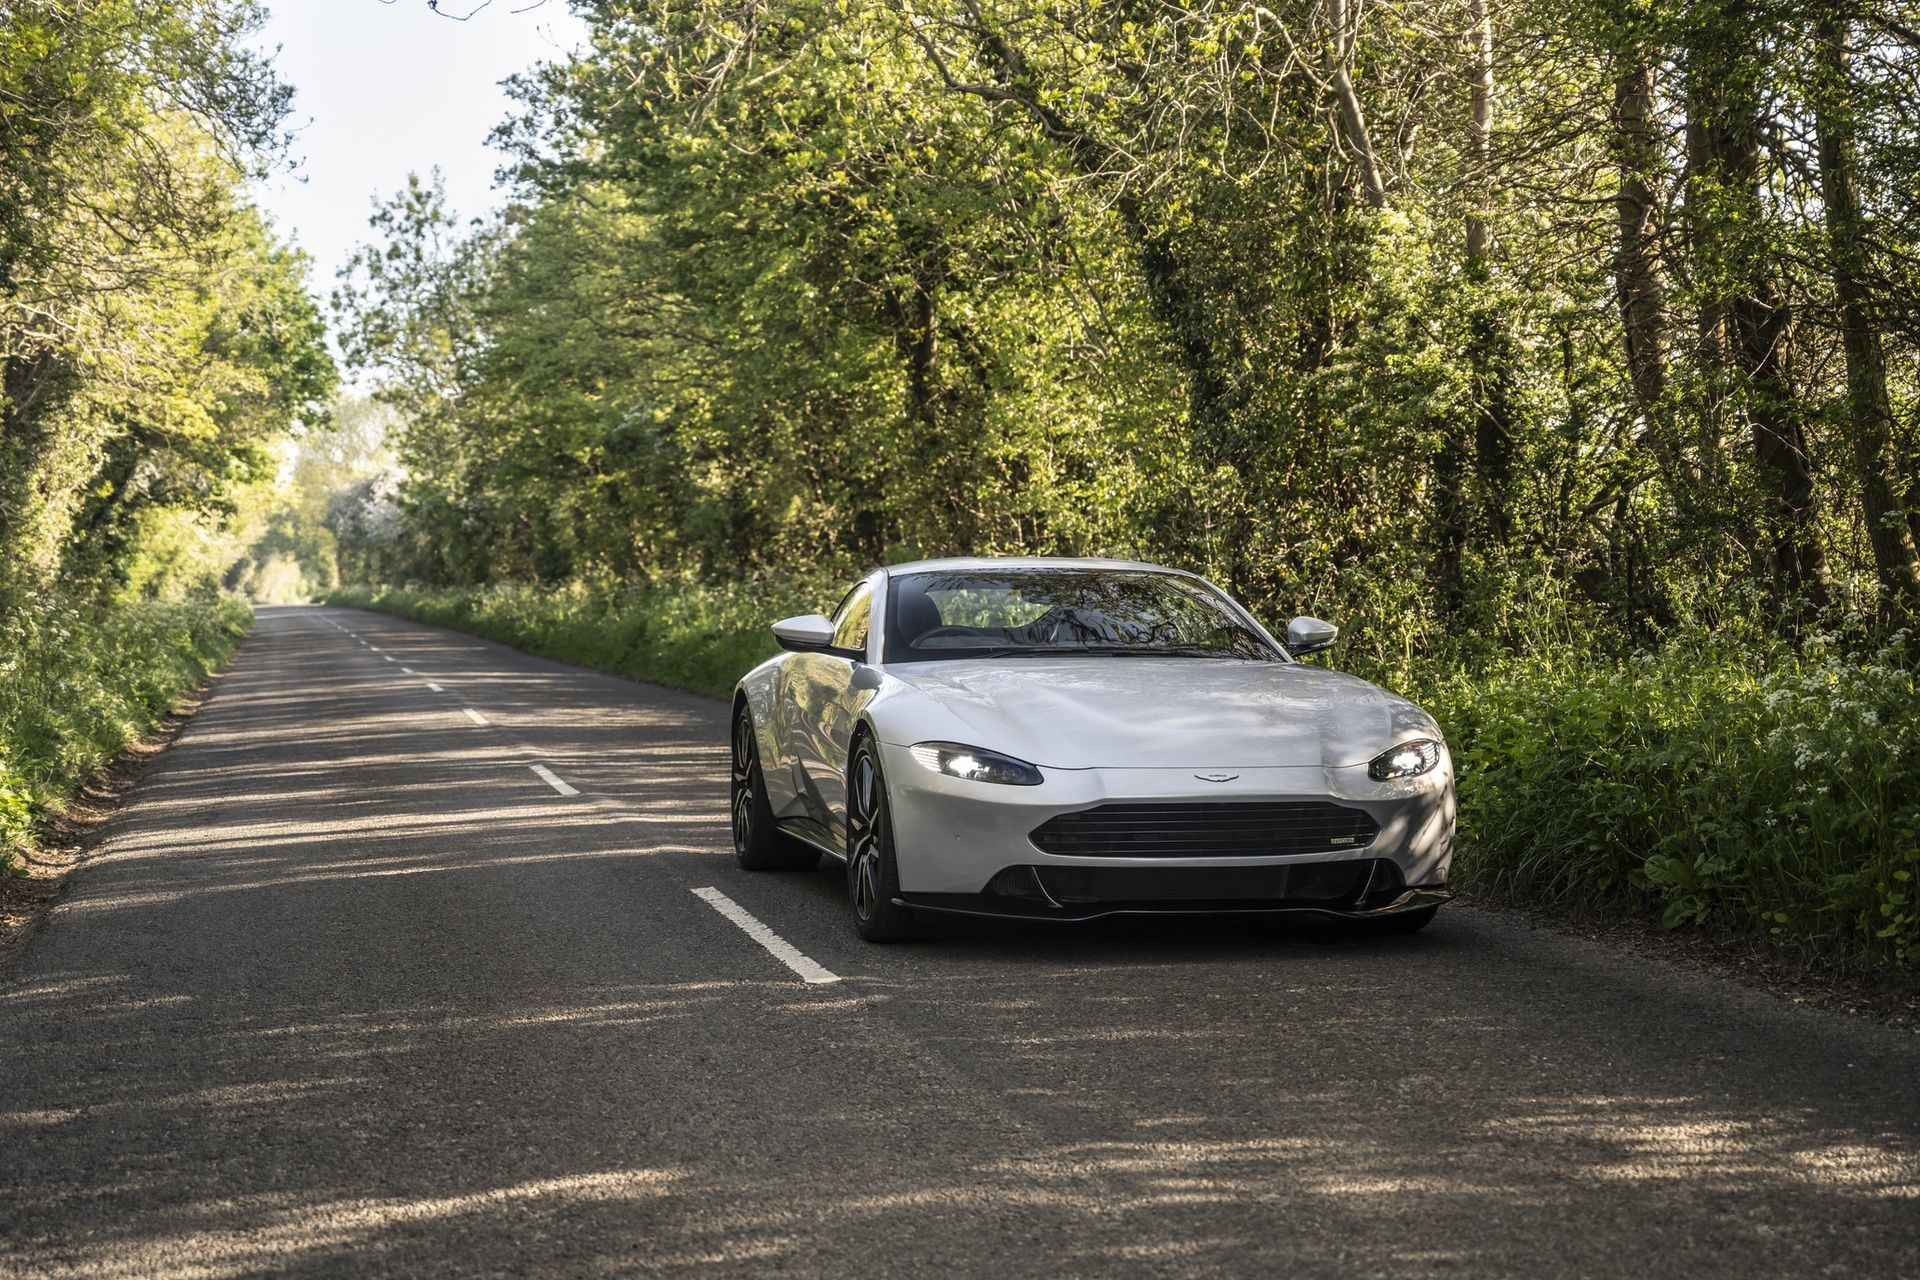 5.-Revenant-Automotive-Aston-Martin-Vantage-bumper-on-British-roads